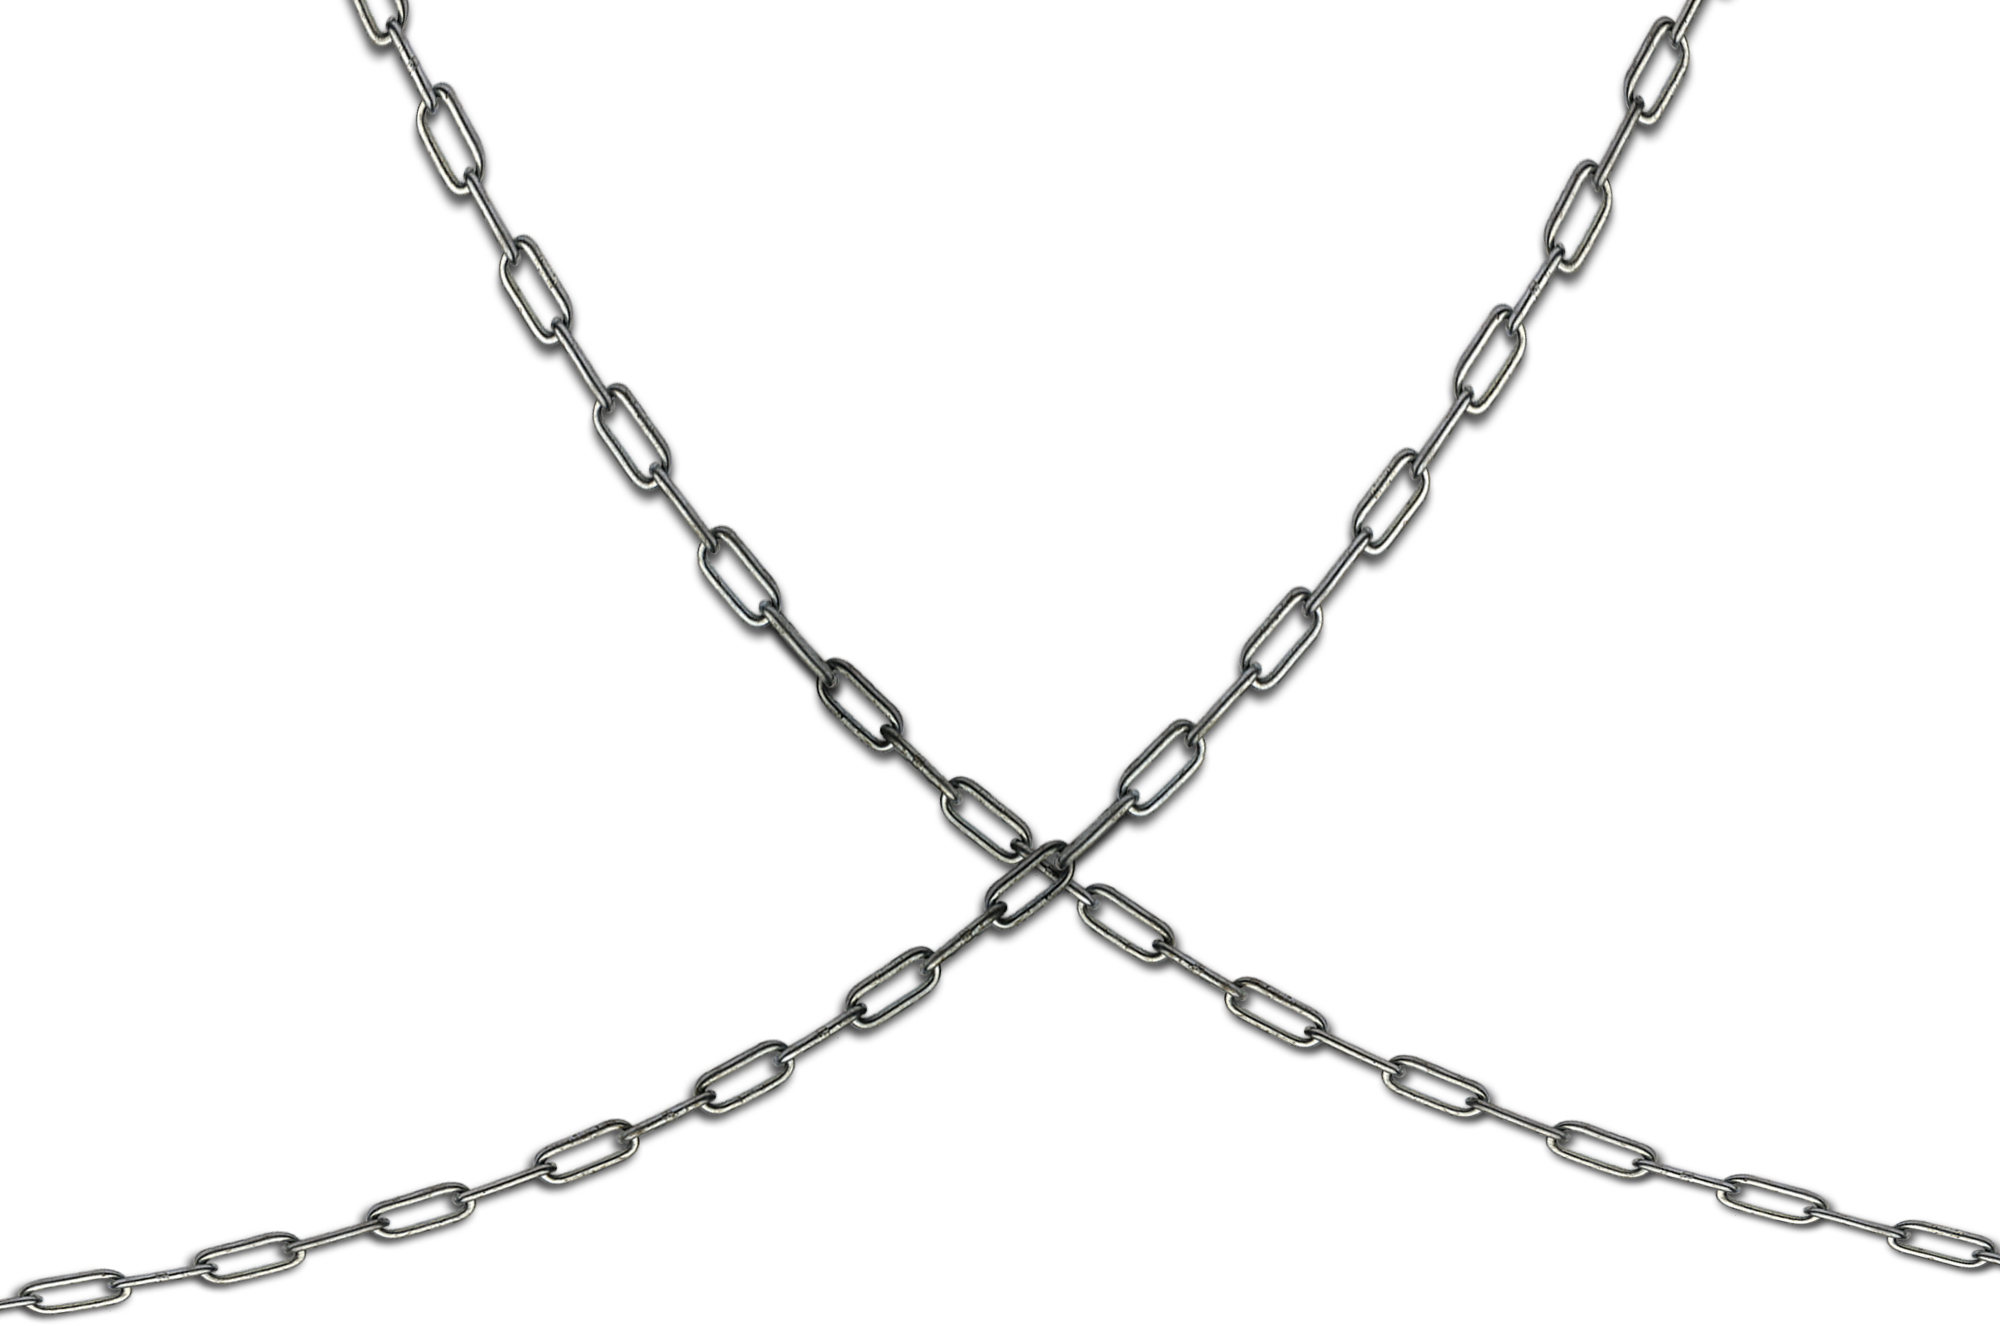 Chain PNG Images Transparent Free Download.